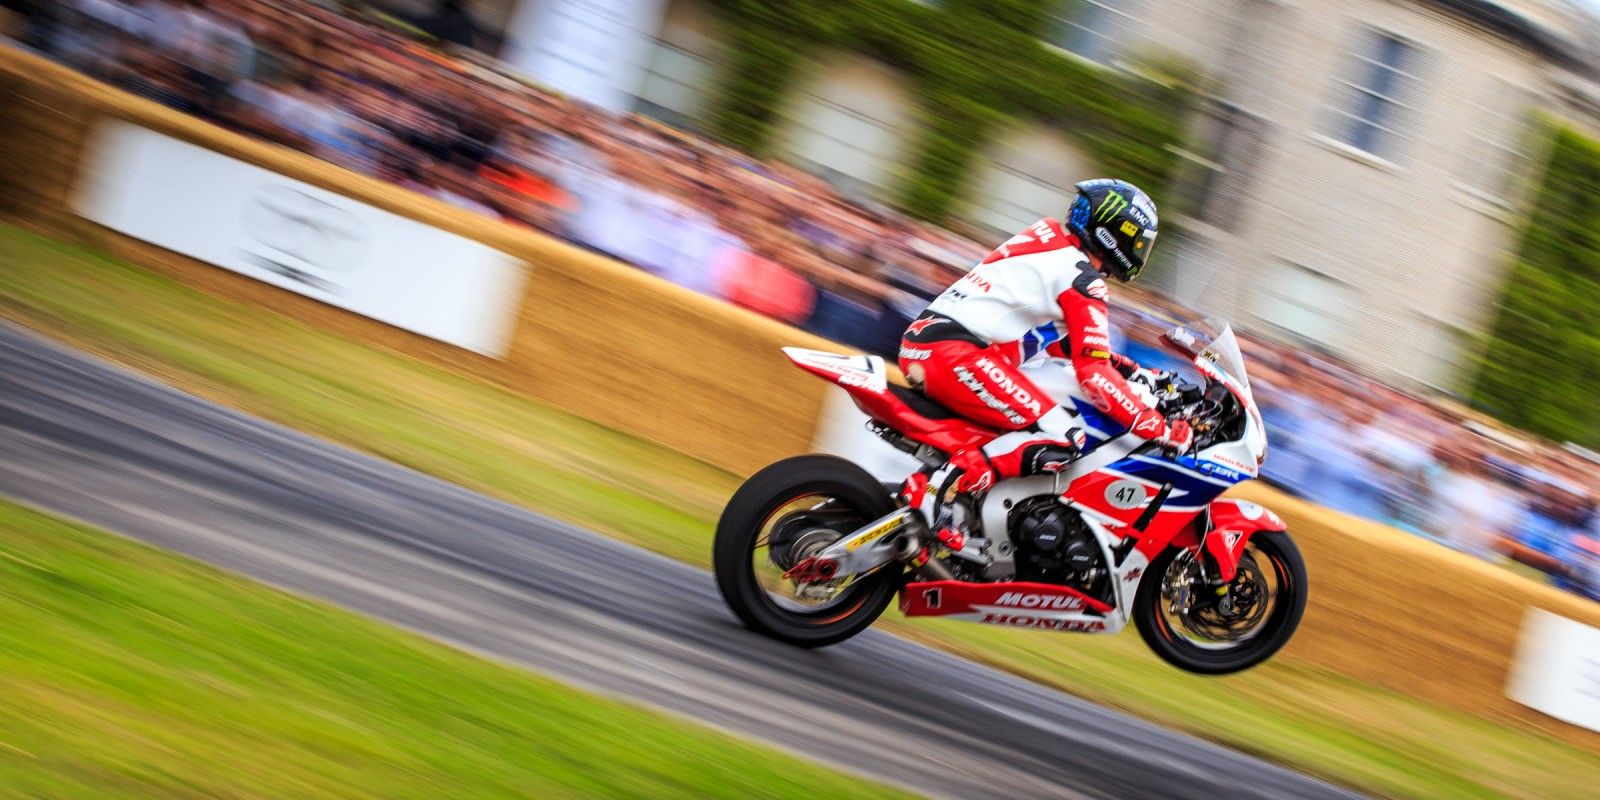 John McGuinness at Goodwood FOS